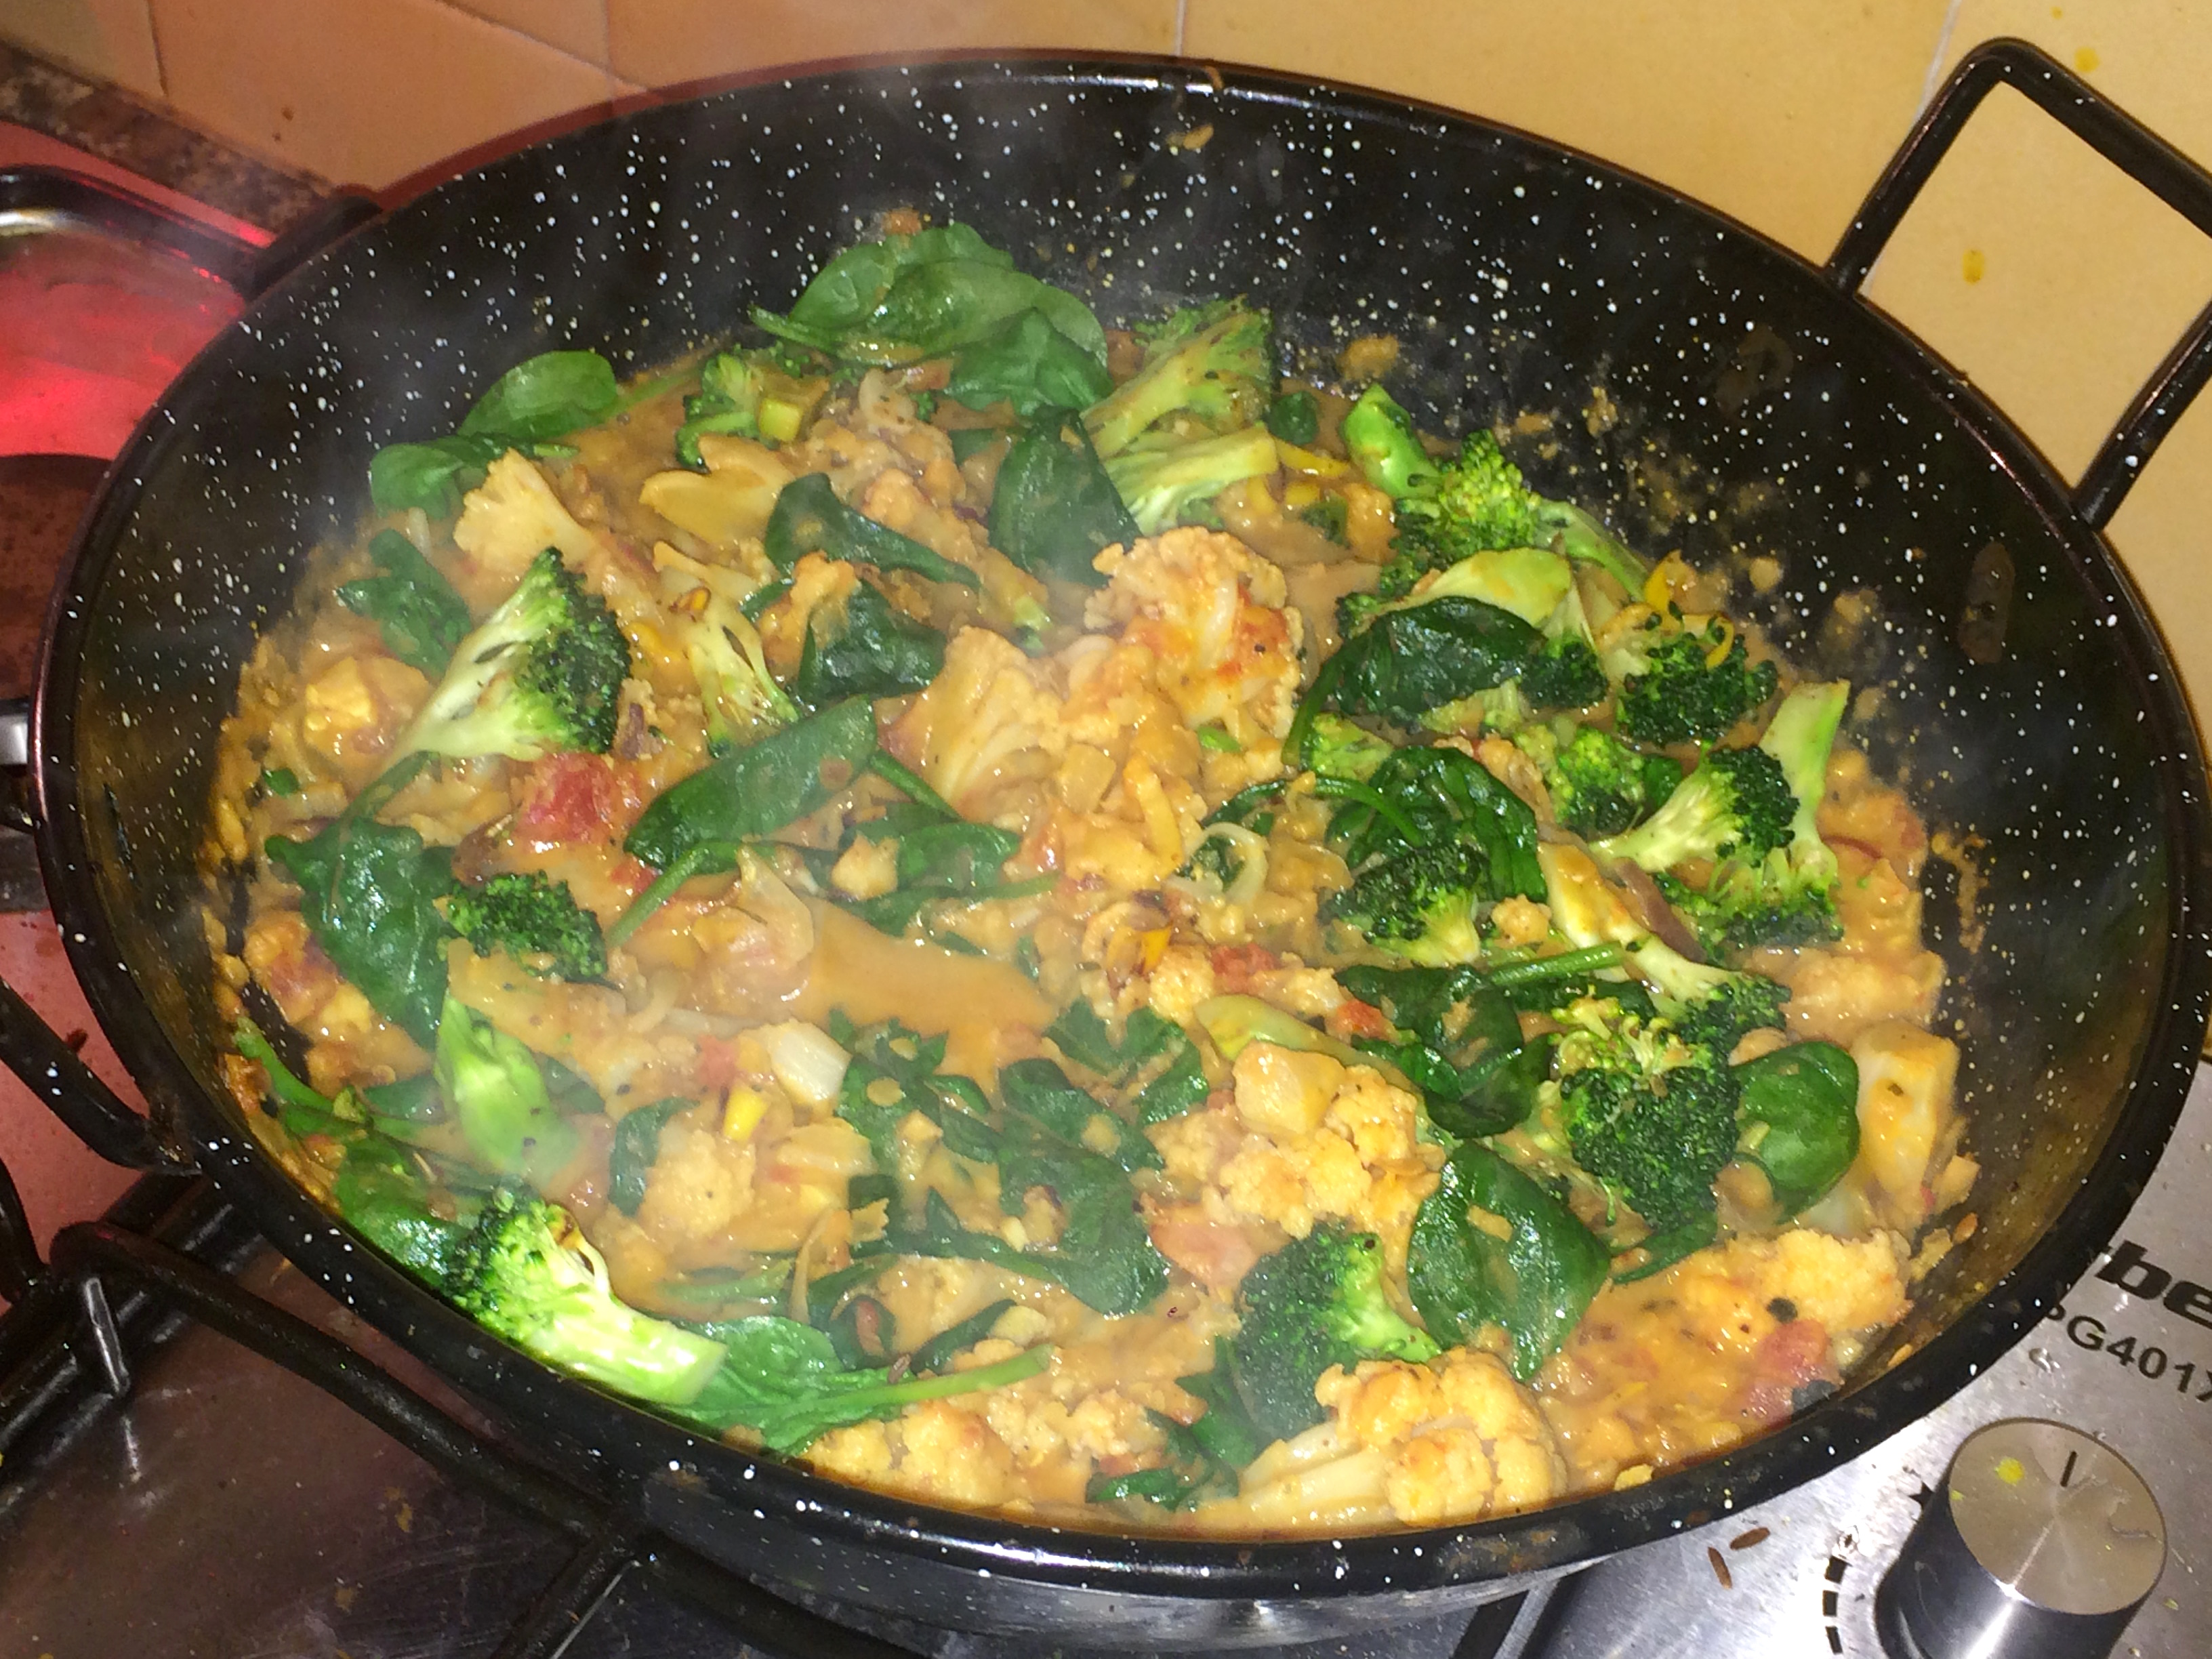 cheap & cheerful curry, how to use up leftovers, vegan, gluten free, simple, quick, red lentils, coconut milk, spinach, garlic & ginger,